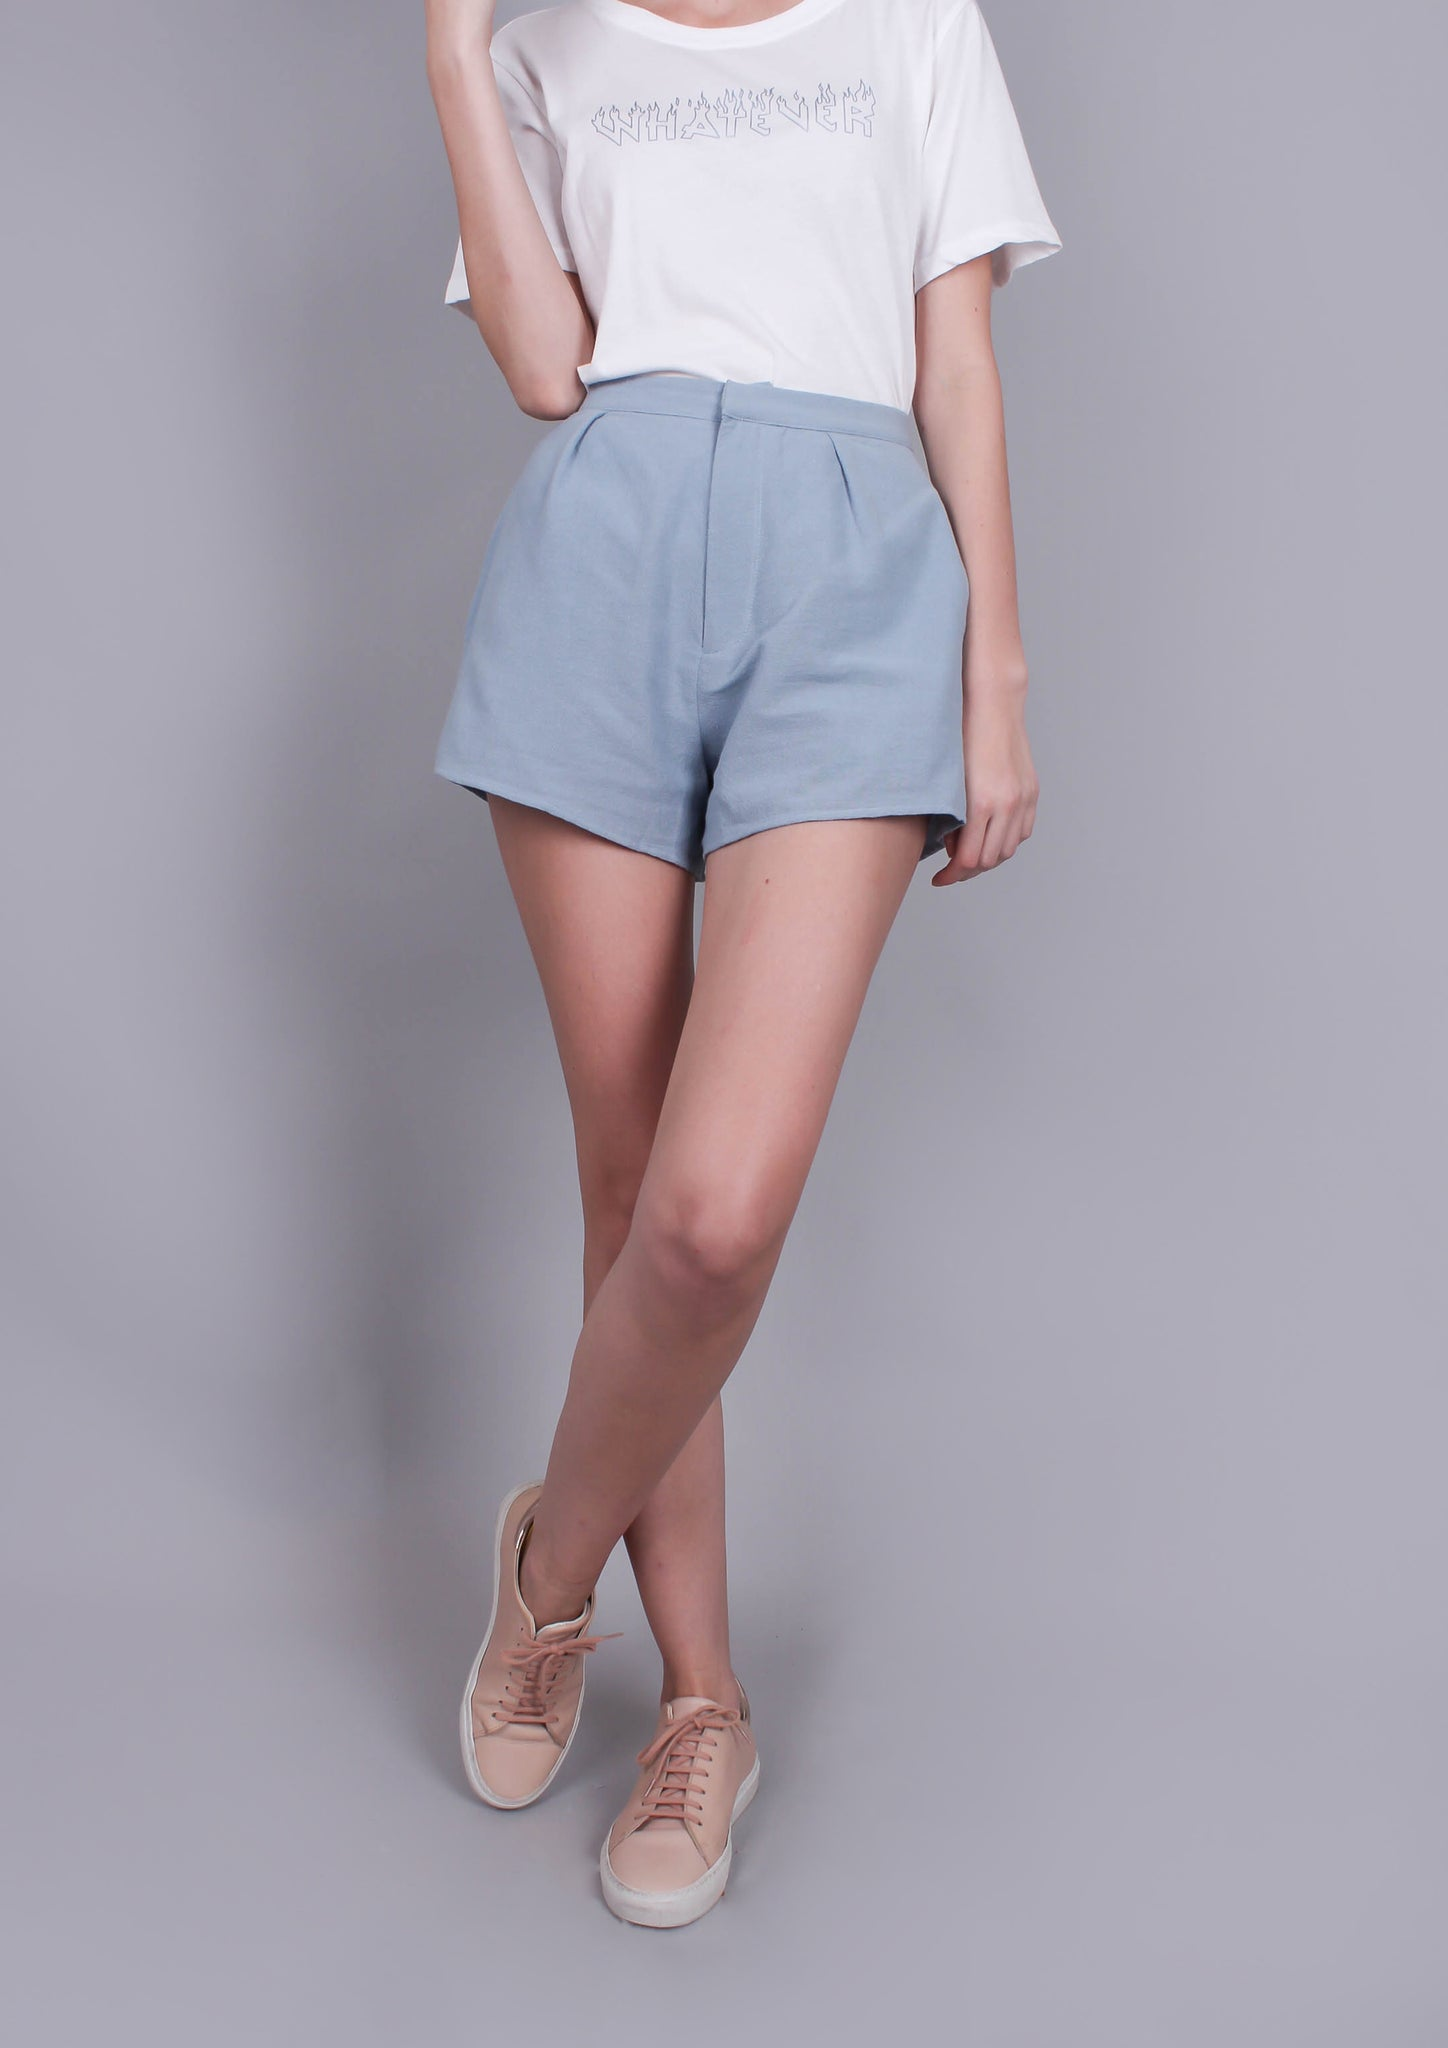 'Sky High' High Waisted Shorts - Moxie